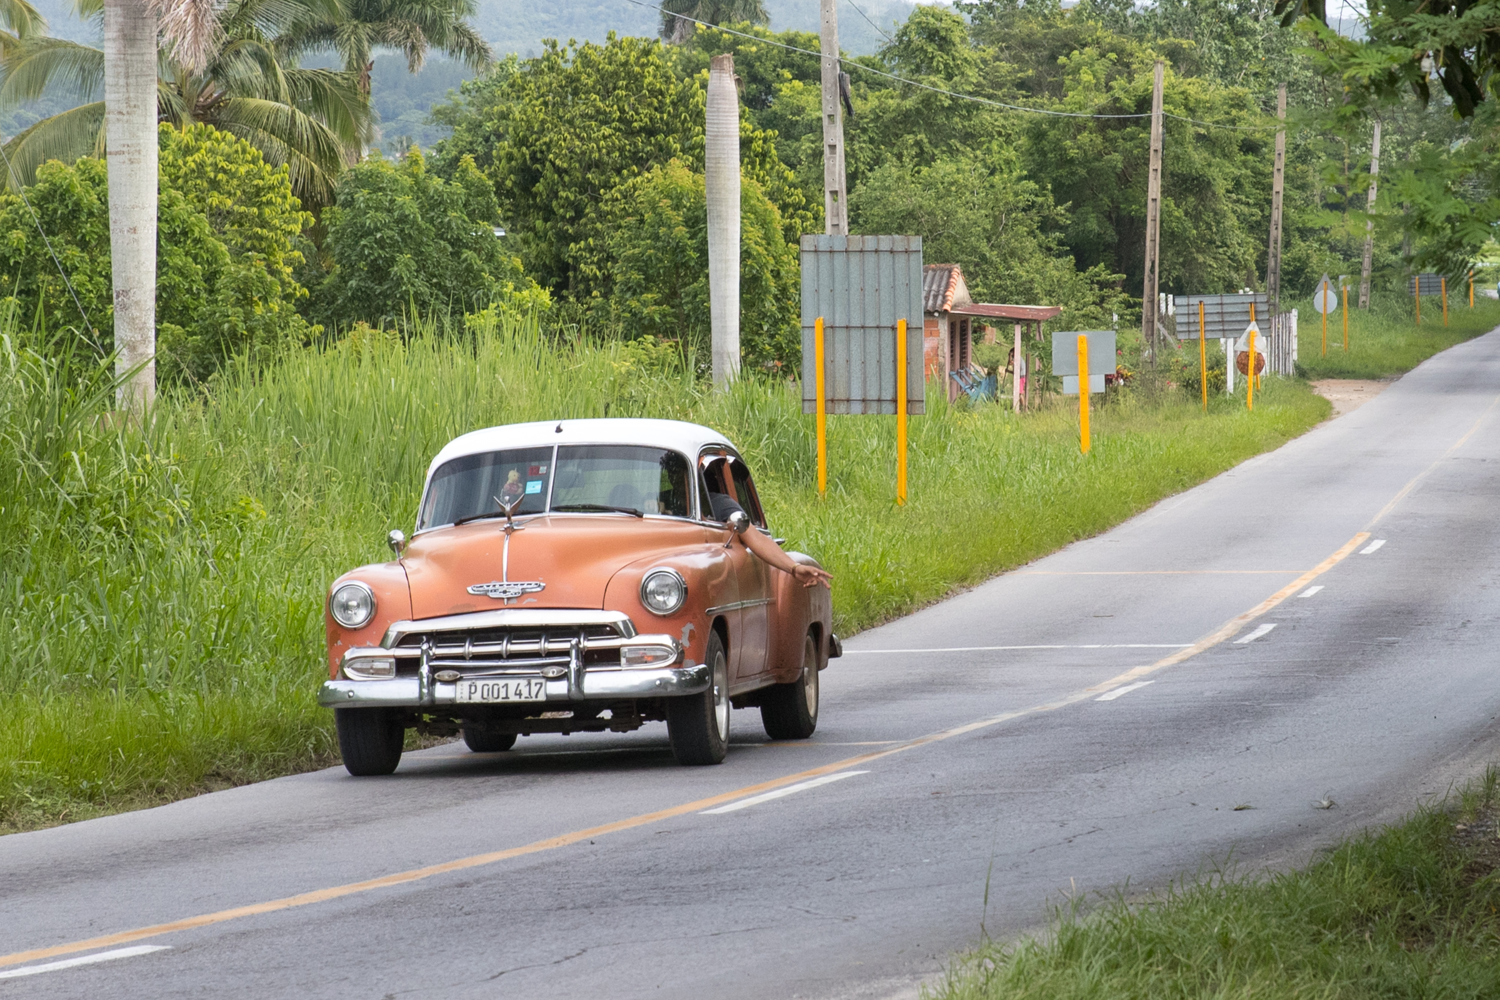 Classic car driving in the Cuban countryside. - Cuba Photography